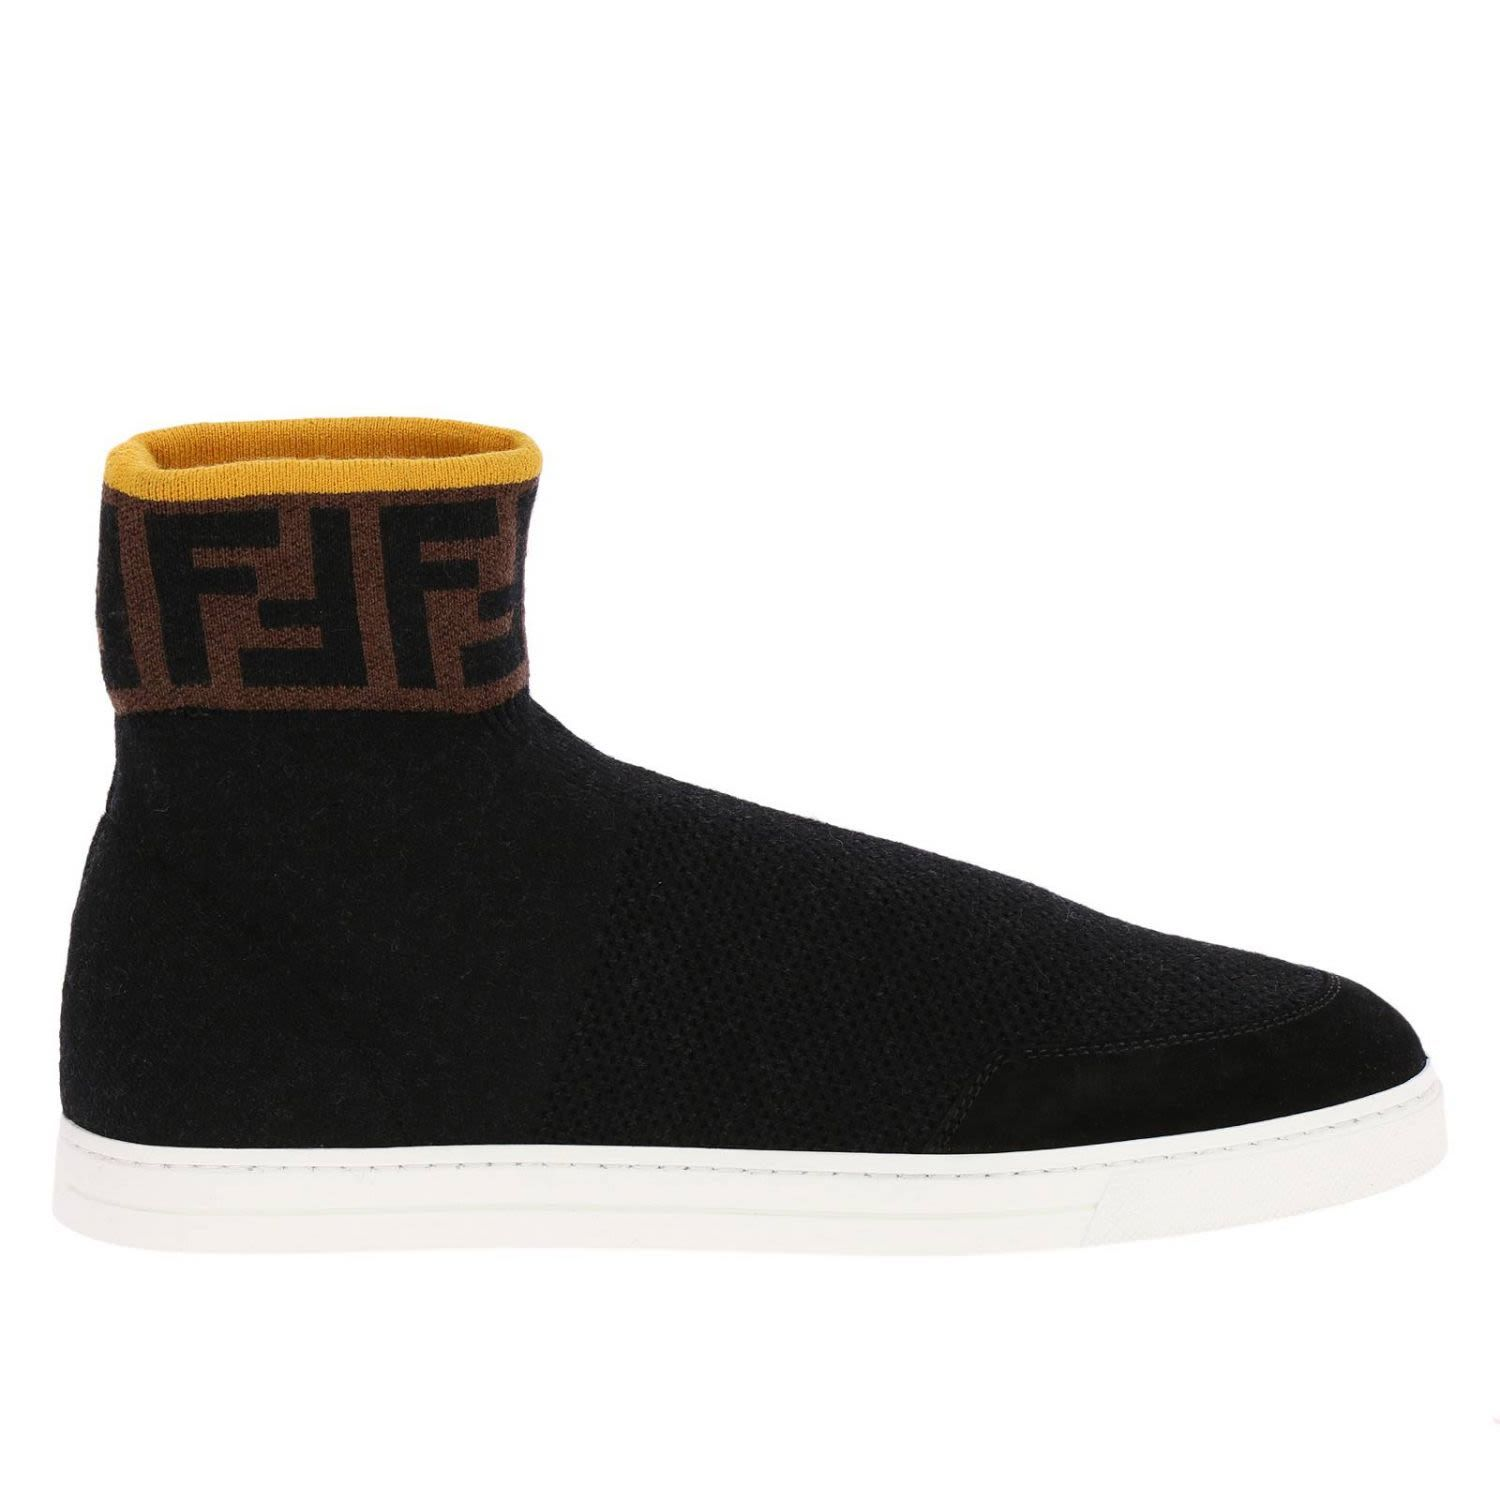 1513e52d5 Fendi High Top Ff Sneakers In Black | fendi | Fendi, Sneakers, Fendi ...